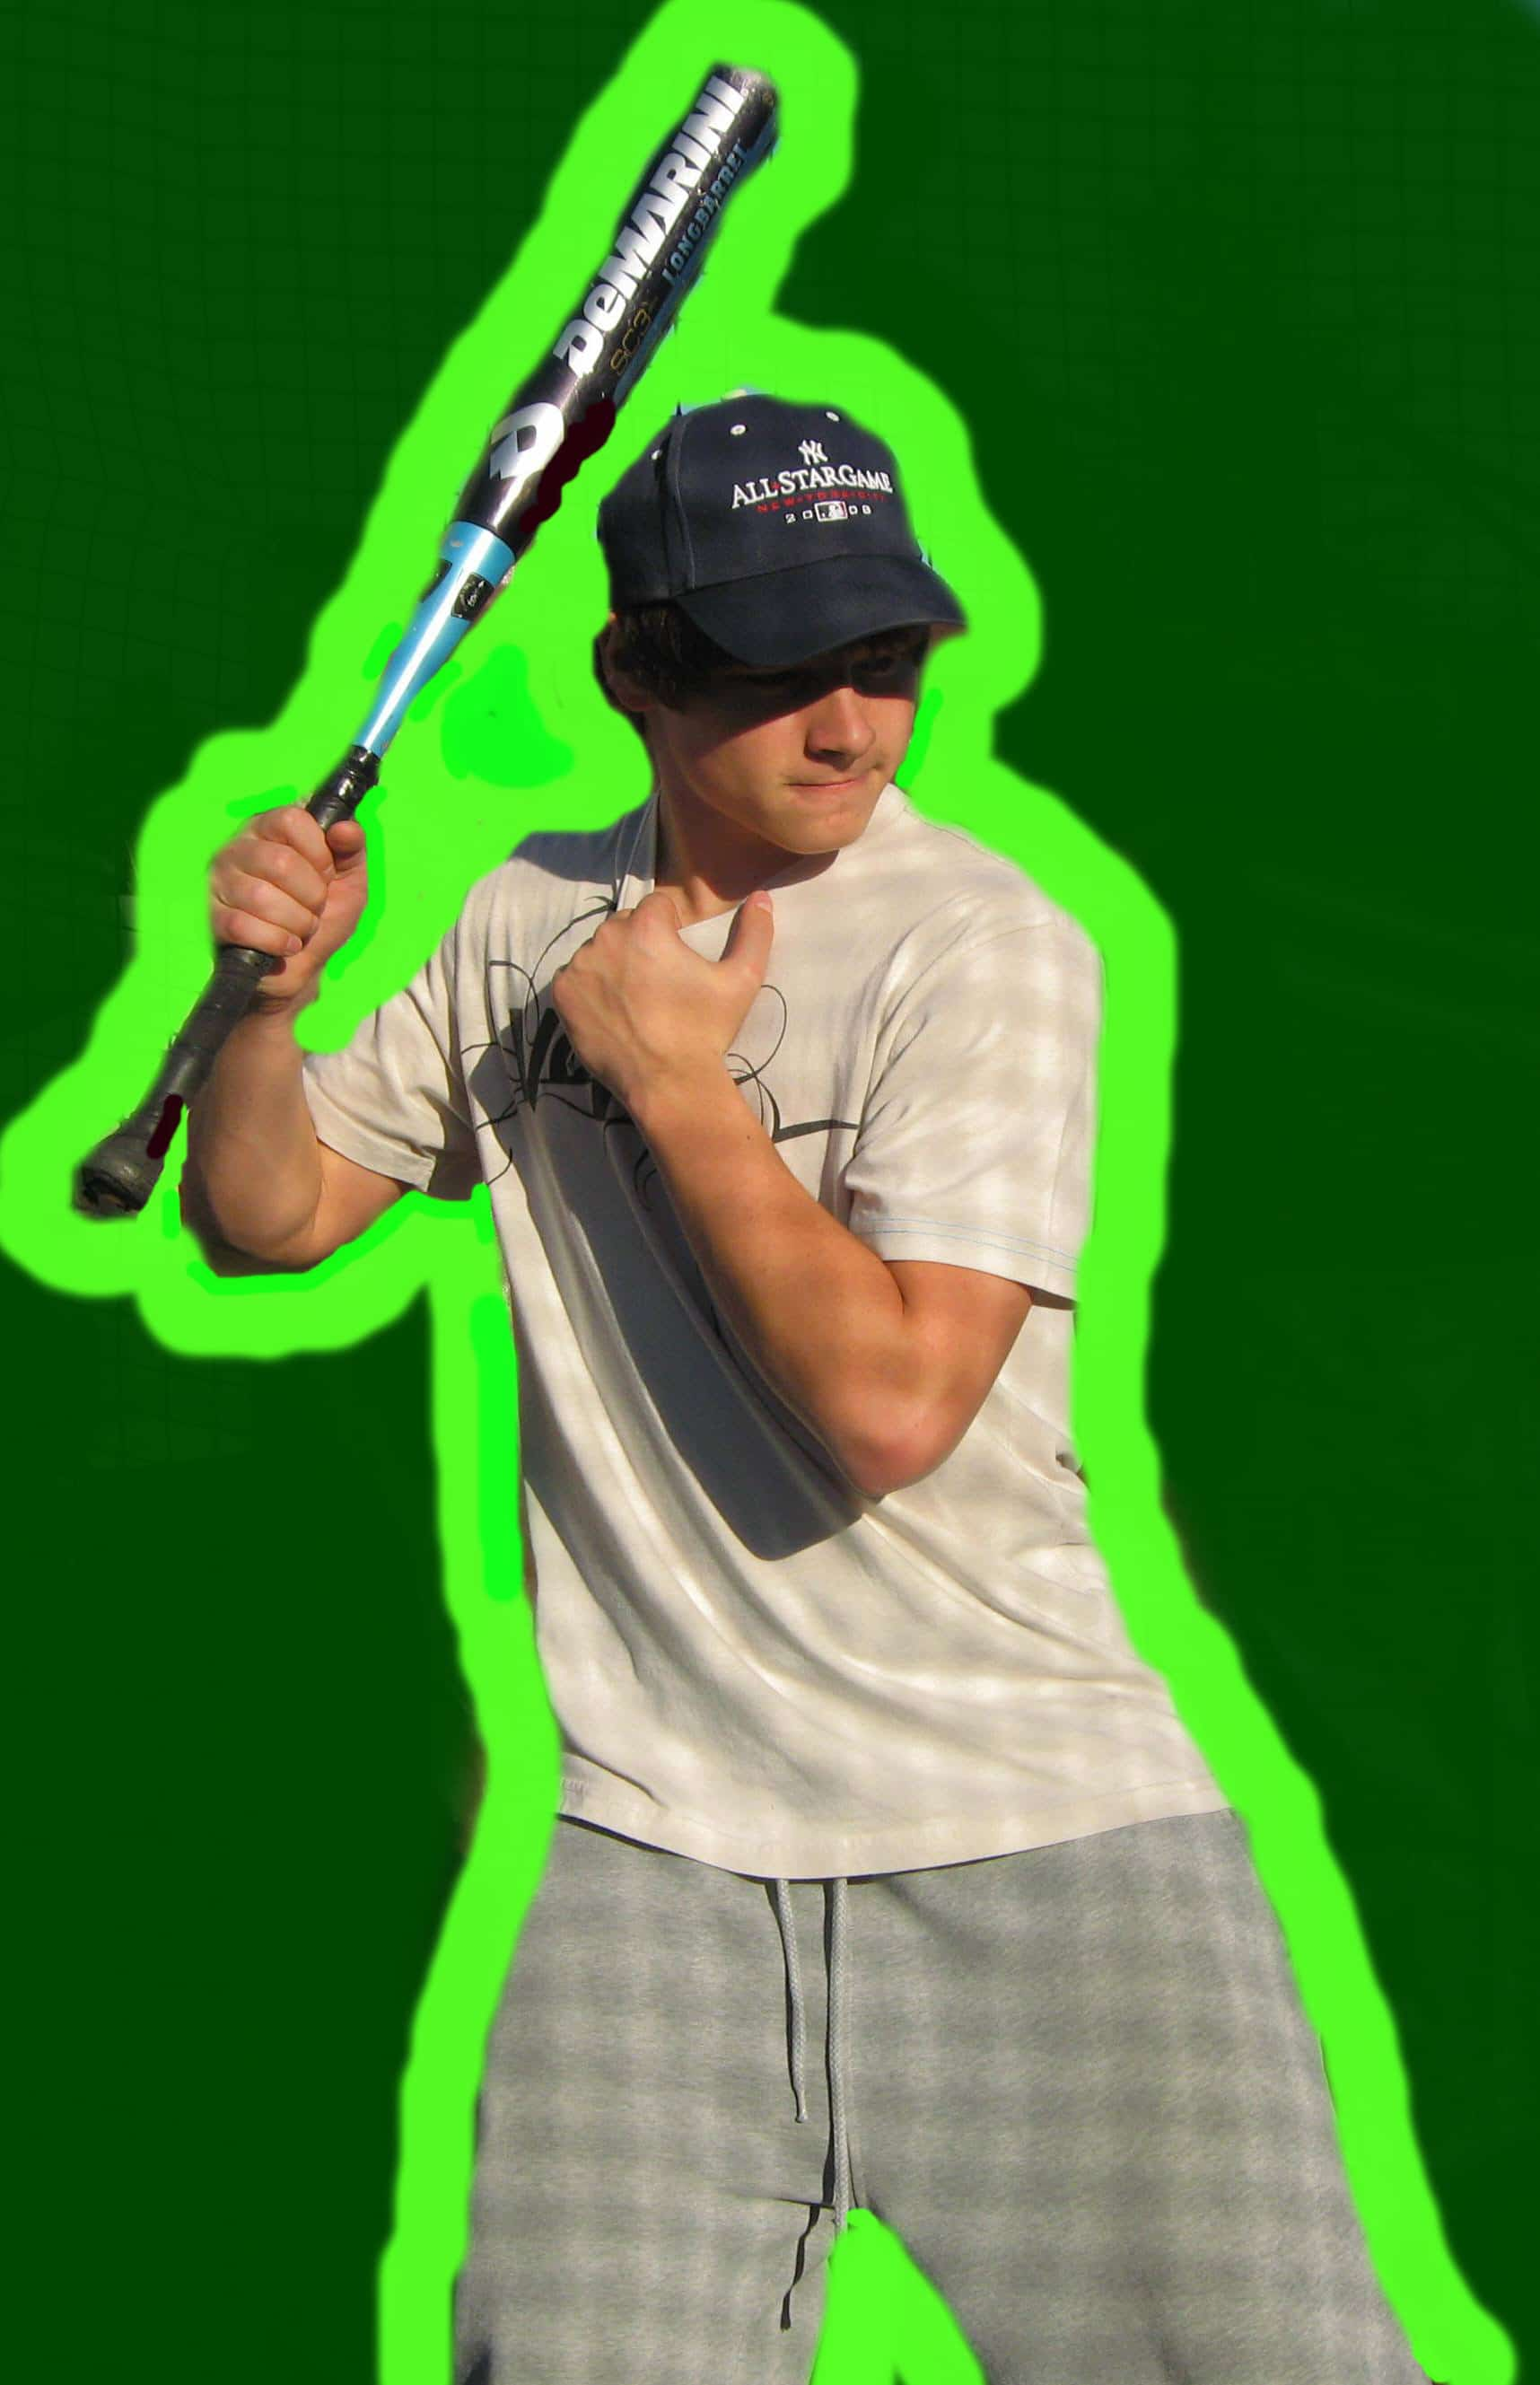 2015 Baseball Drills – Video for Overcoming Lazy Hands